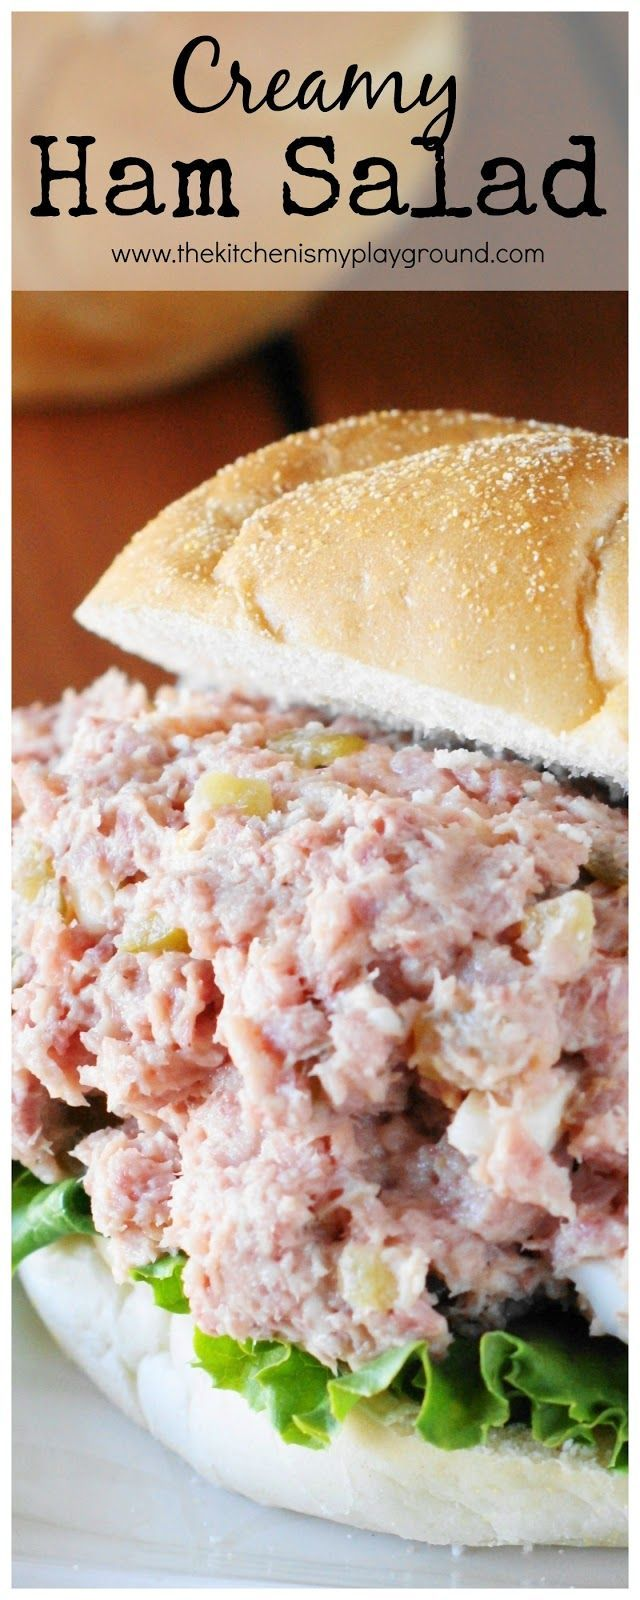 Nothing says comfort food like creamy and delicious ham salad.  Just perfect for using up those ham leftovers!